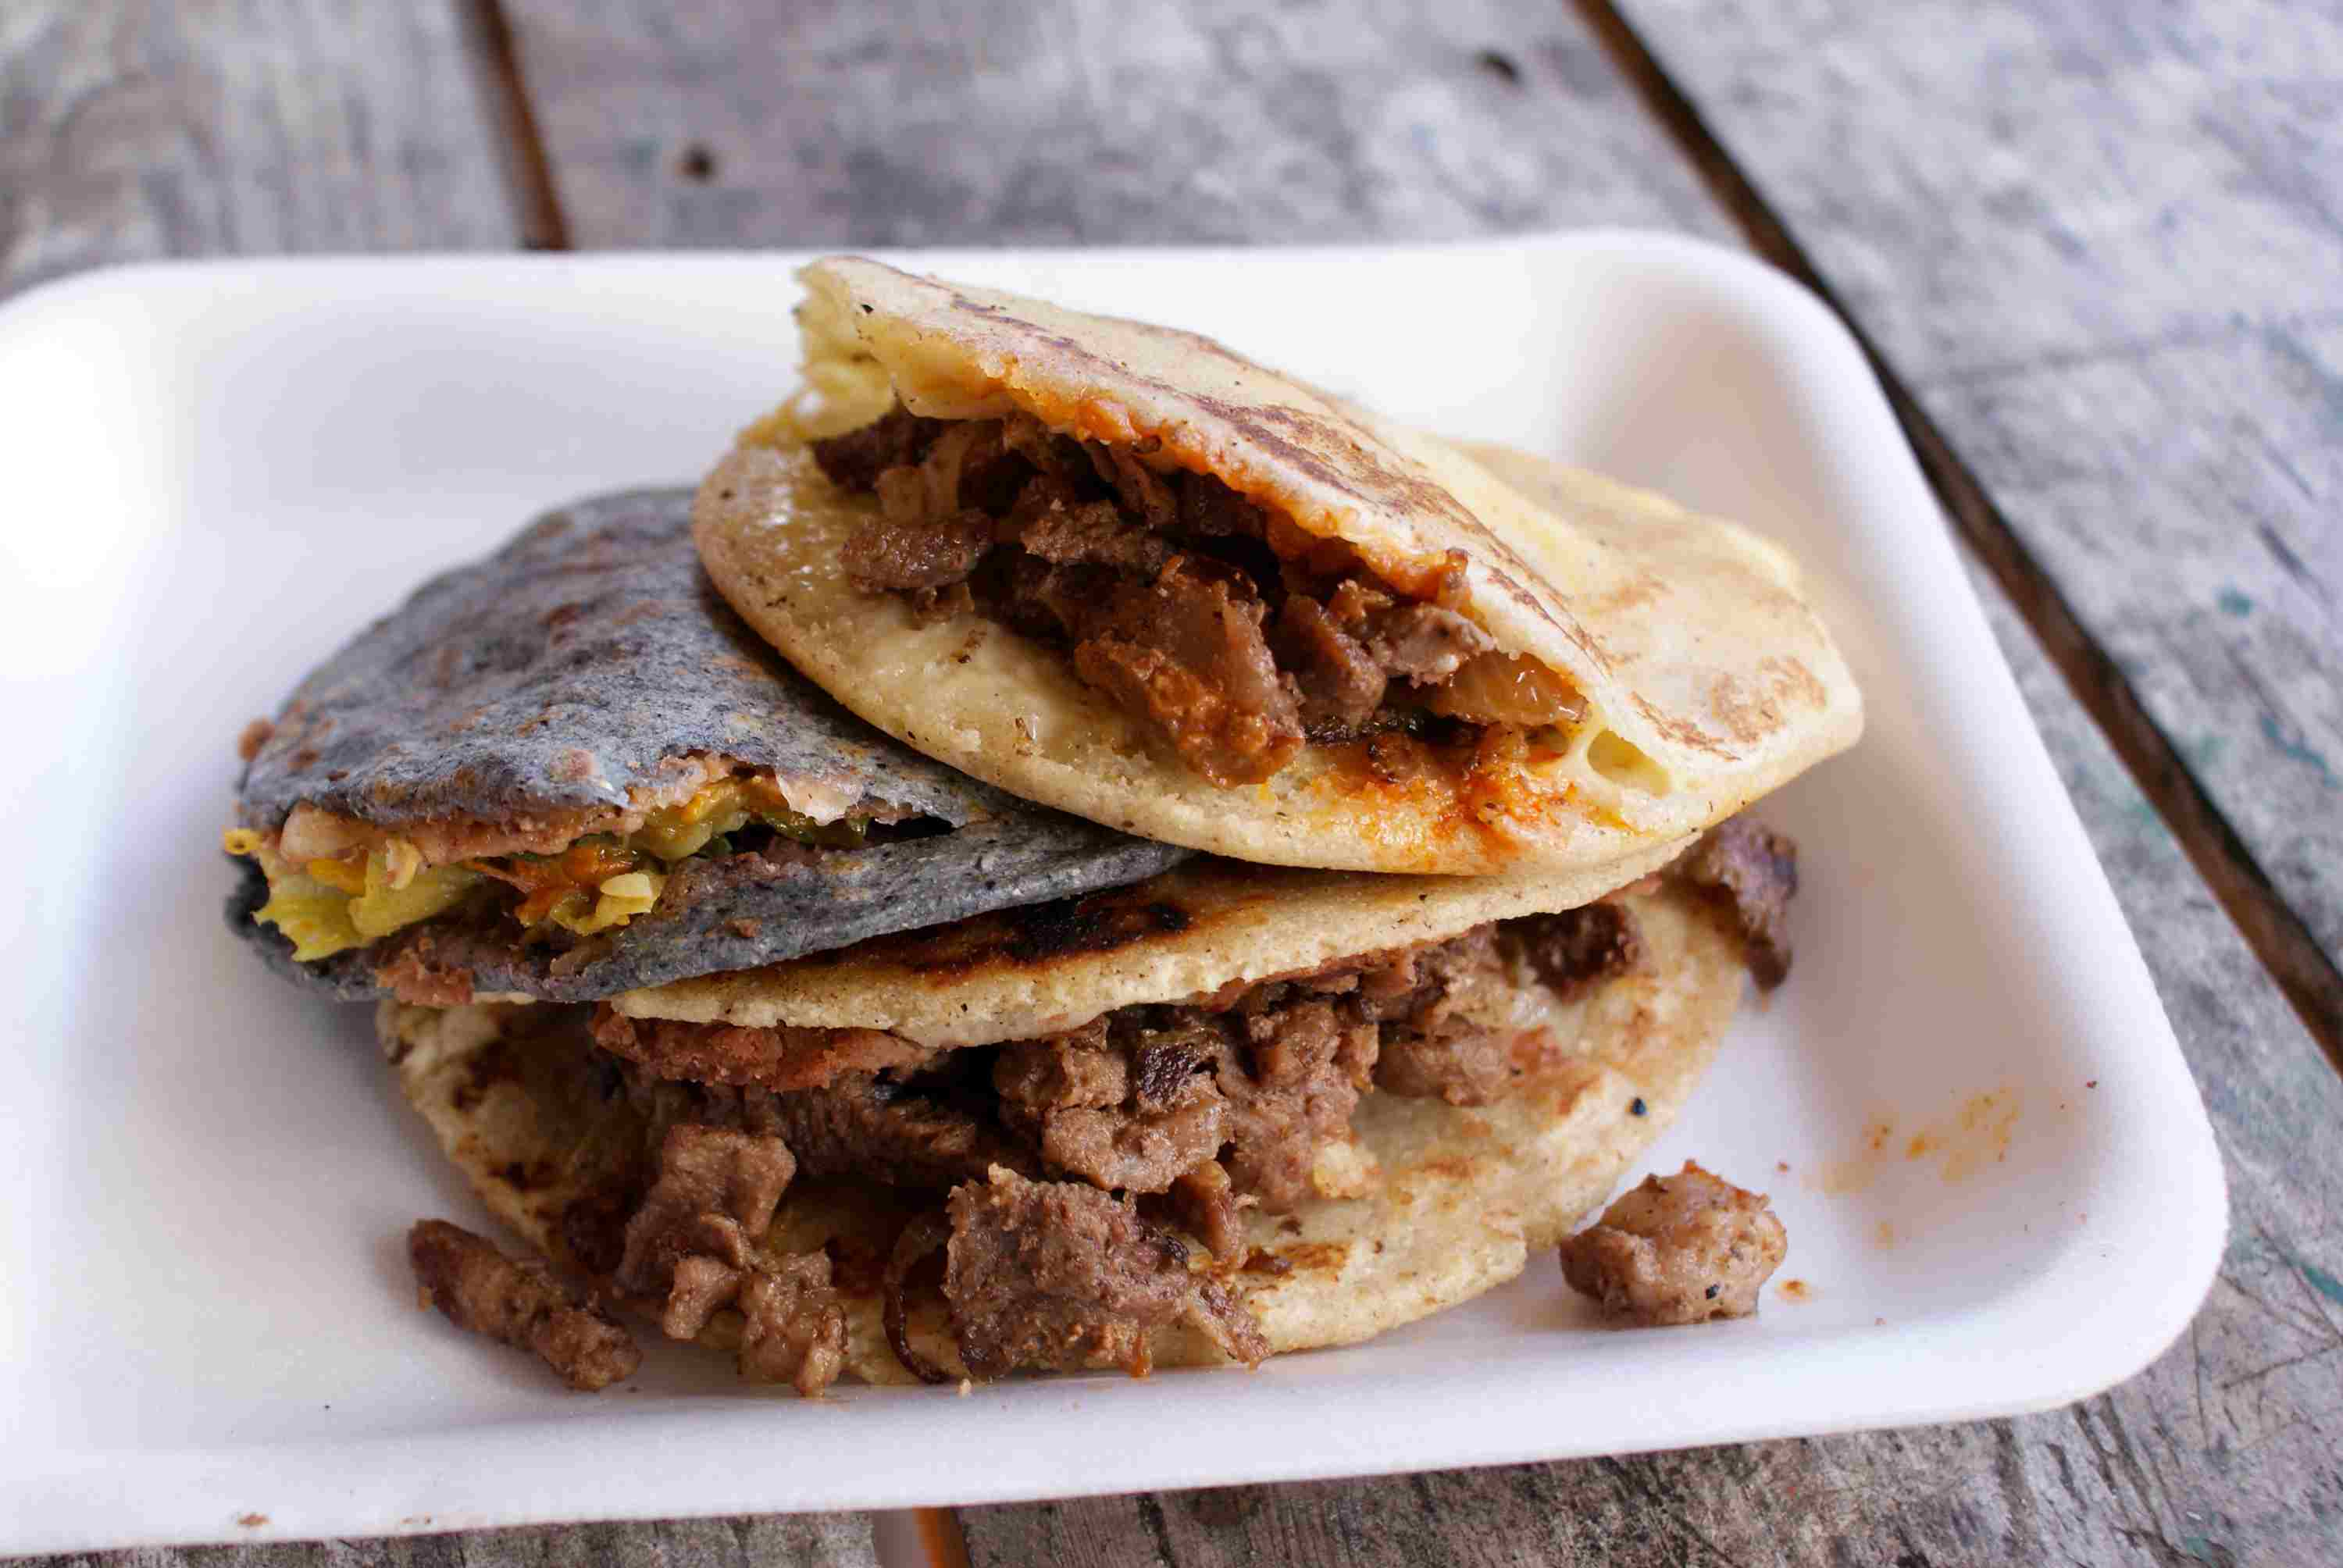 Traditional Mexican Gorditas stuffed with various filling